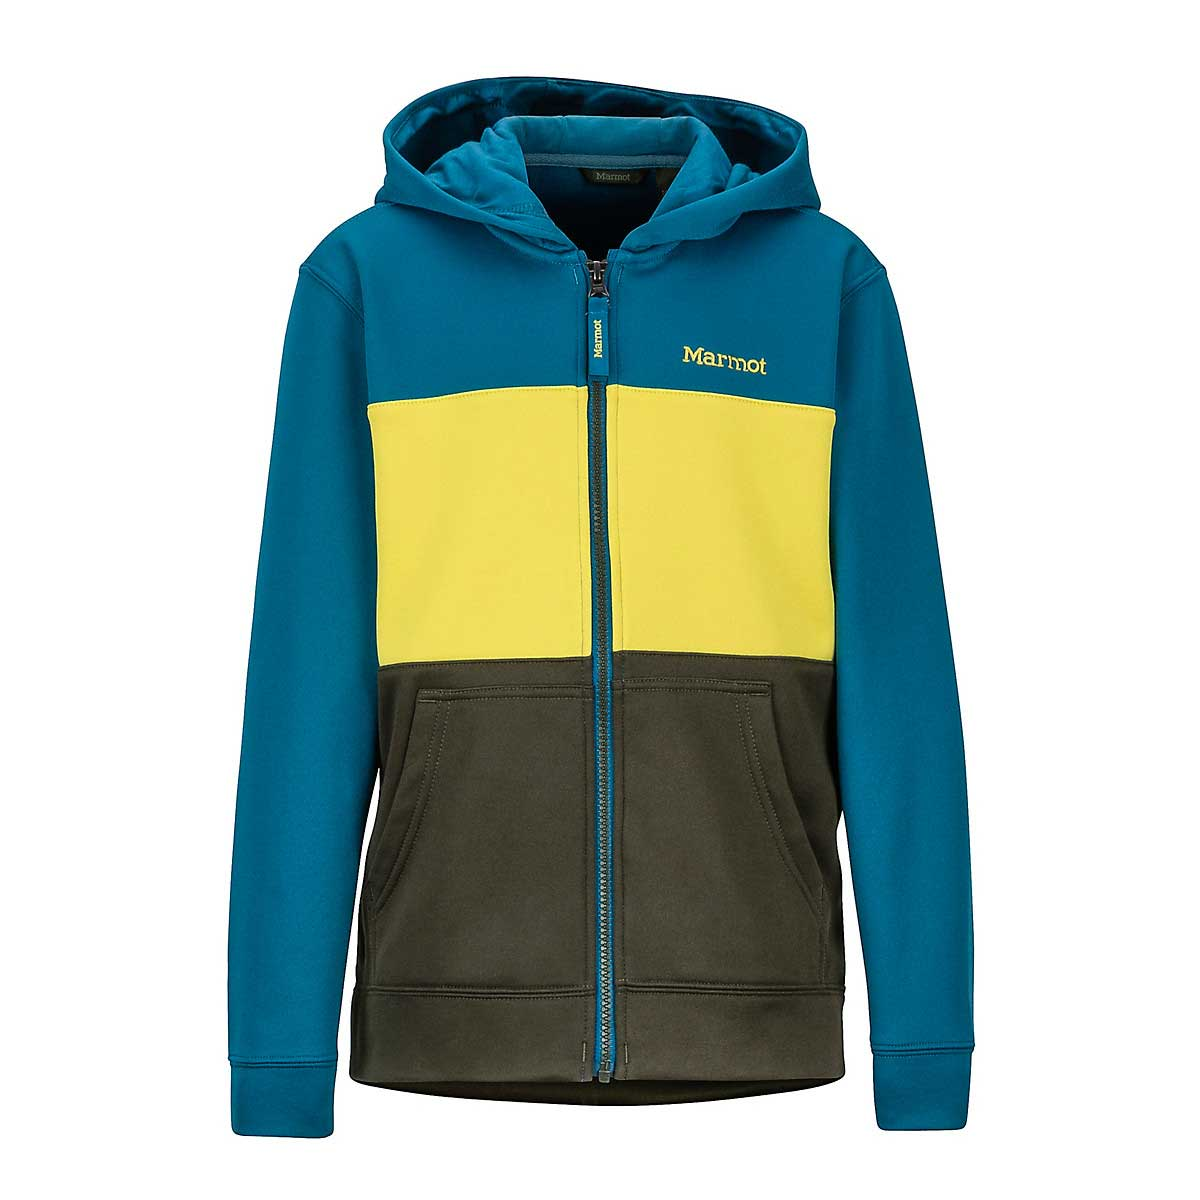 Marmot Boys' Rincon Hoody in Rosin Green and Moroccan Blue